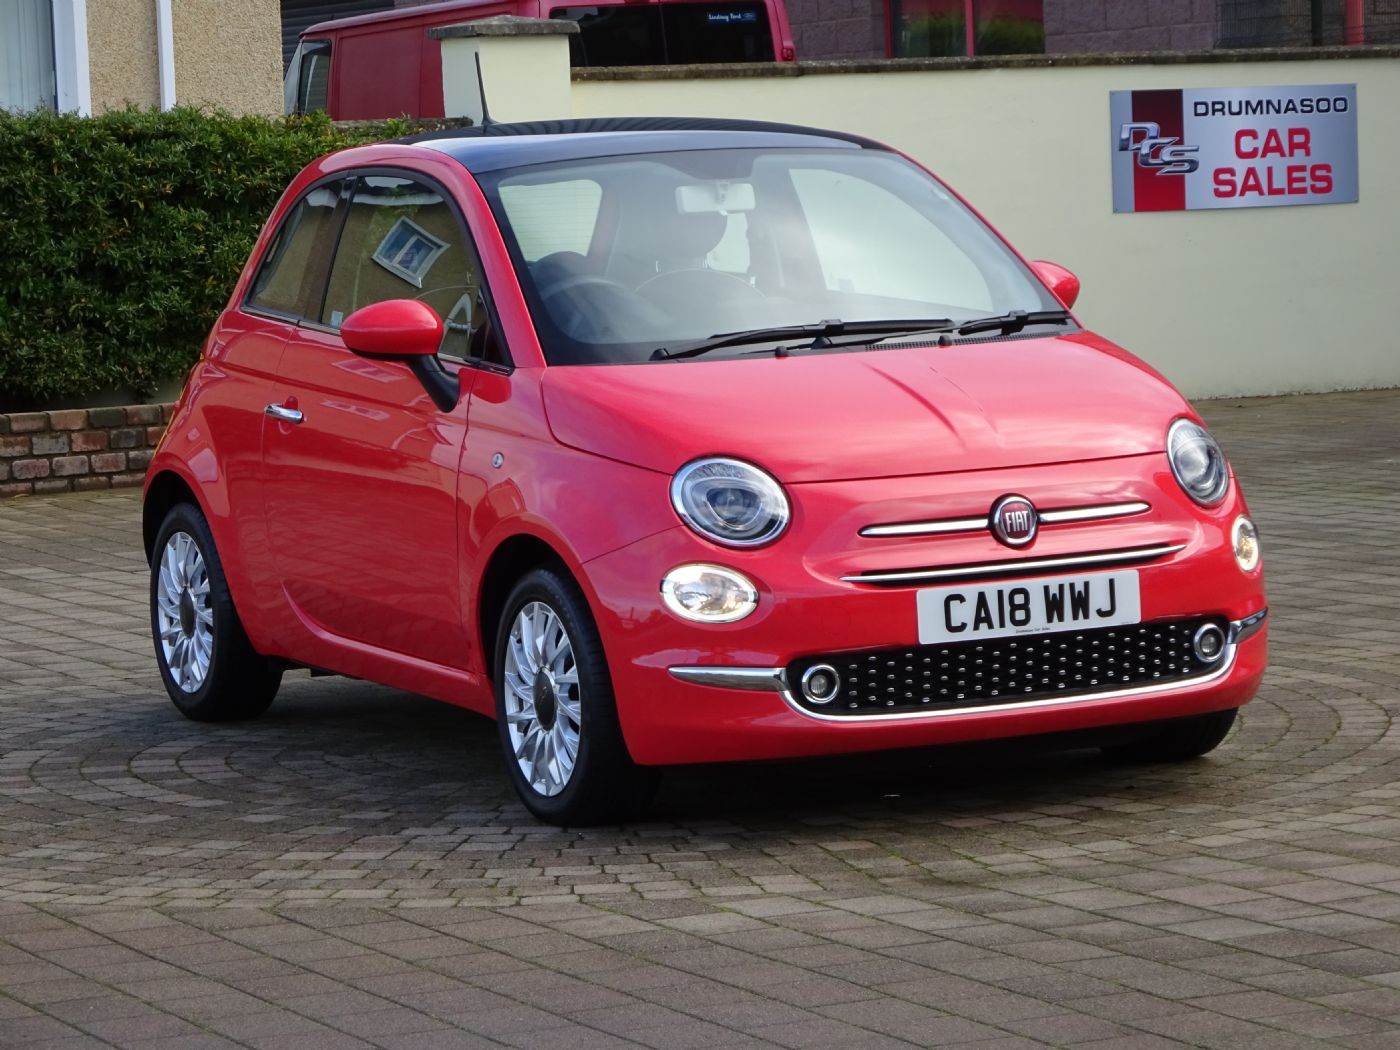 Fiat 500 Lounge 1.2, Panoramic glass roof